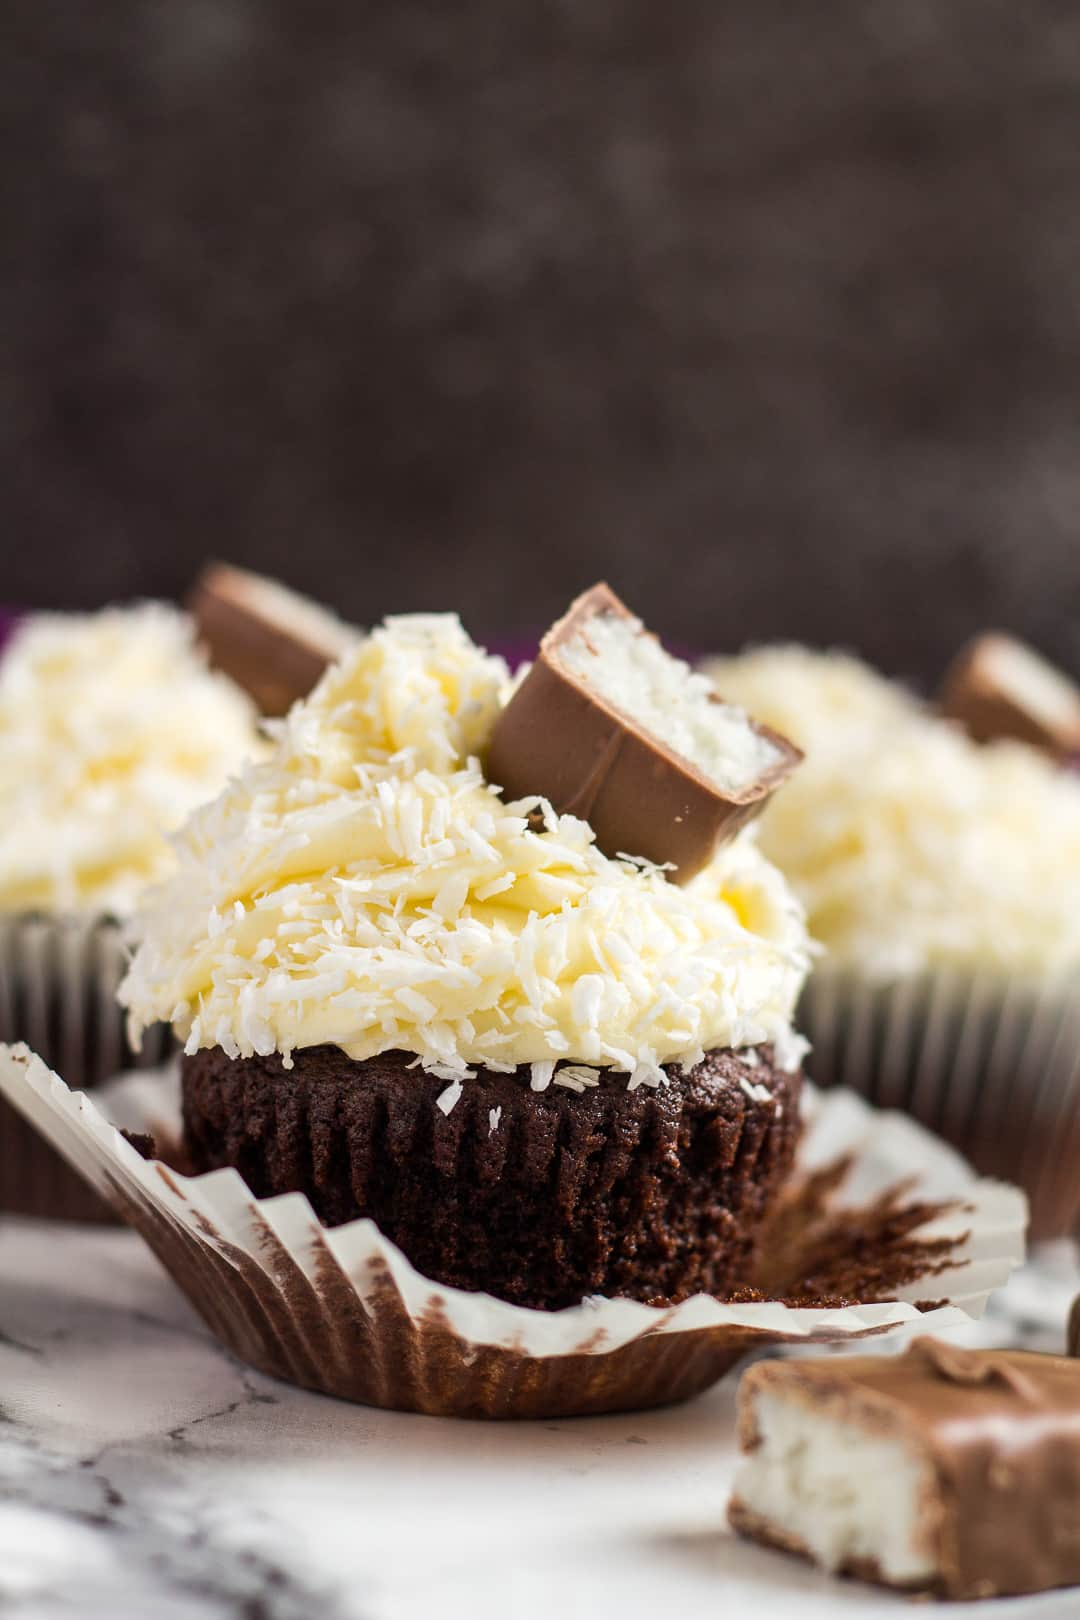 A frosted chocolate coconut cupcake with the wrapper peeled off.